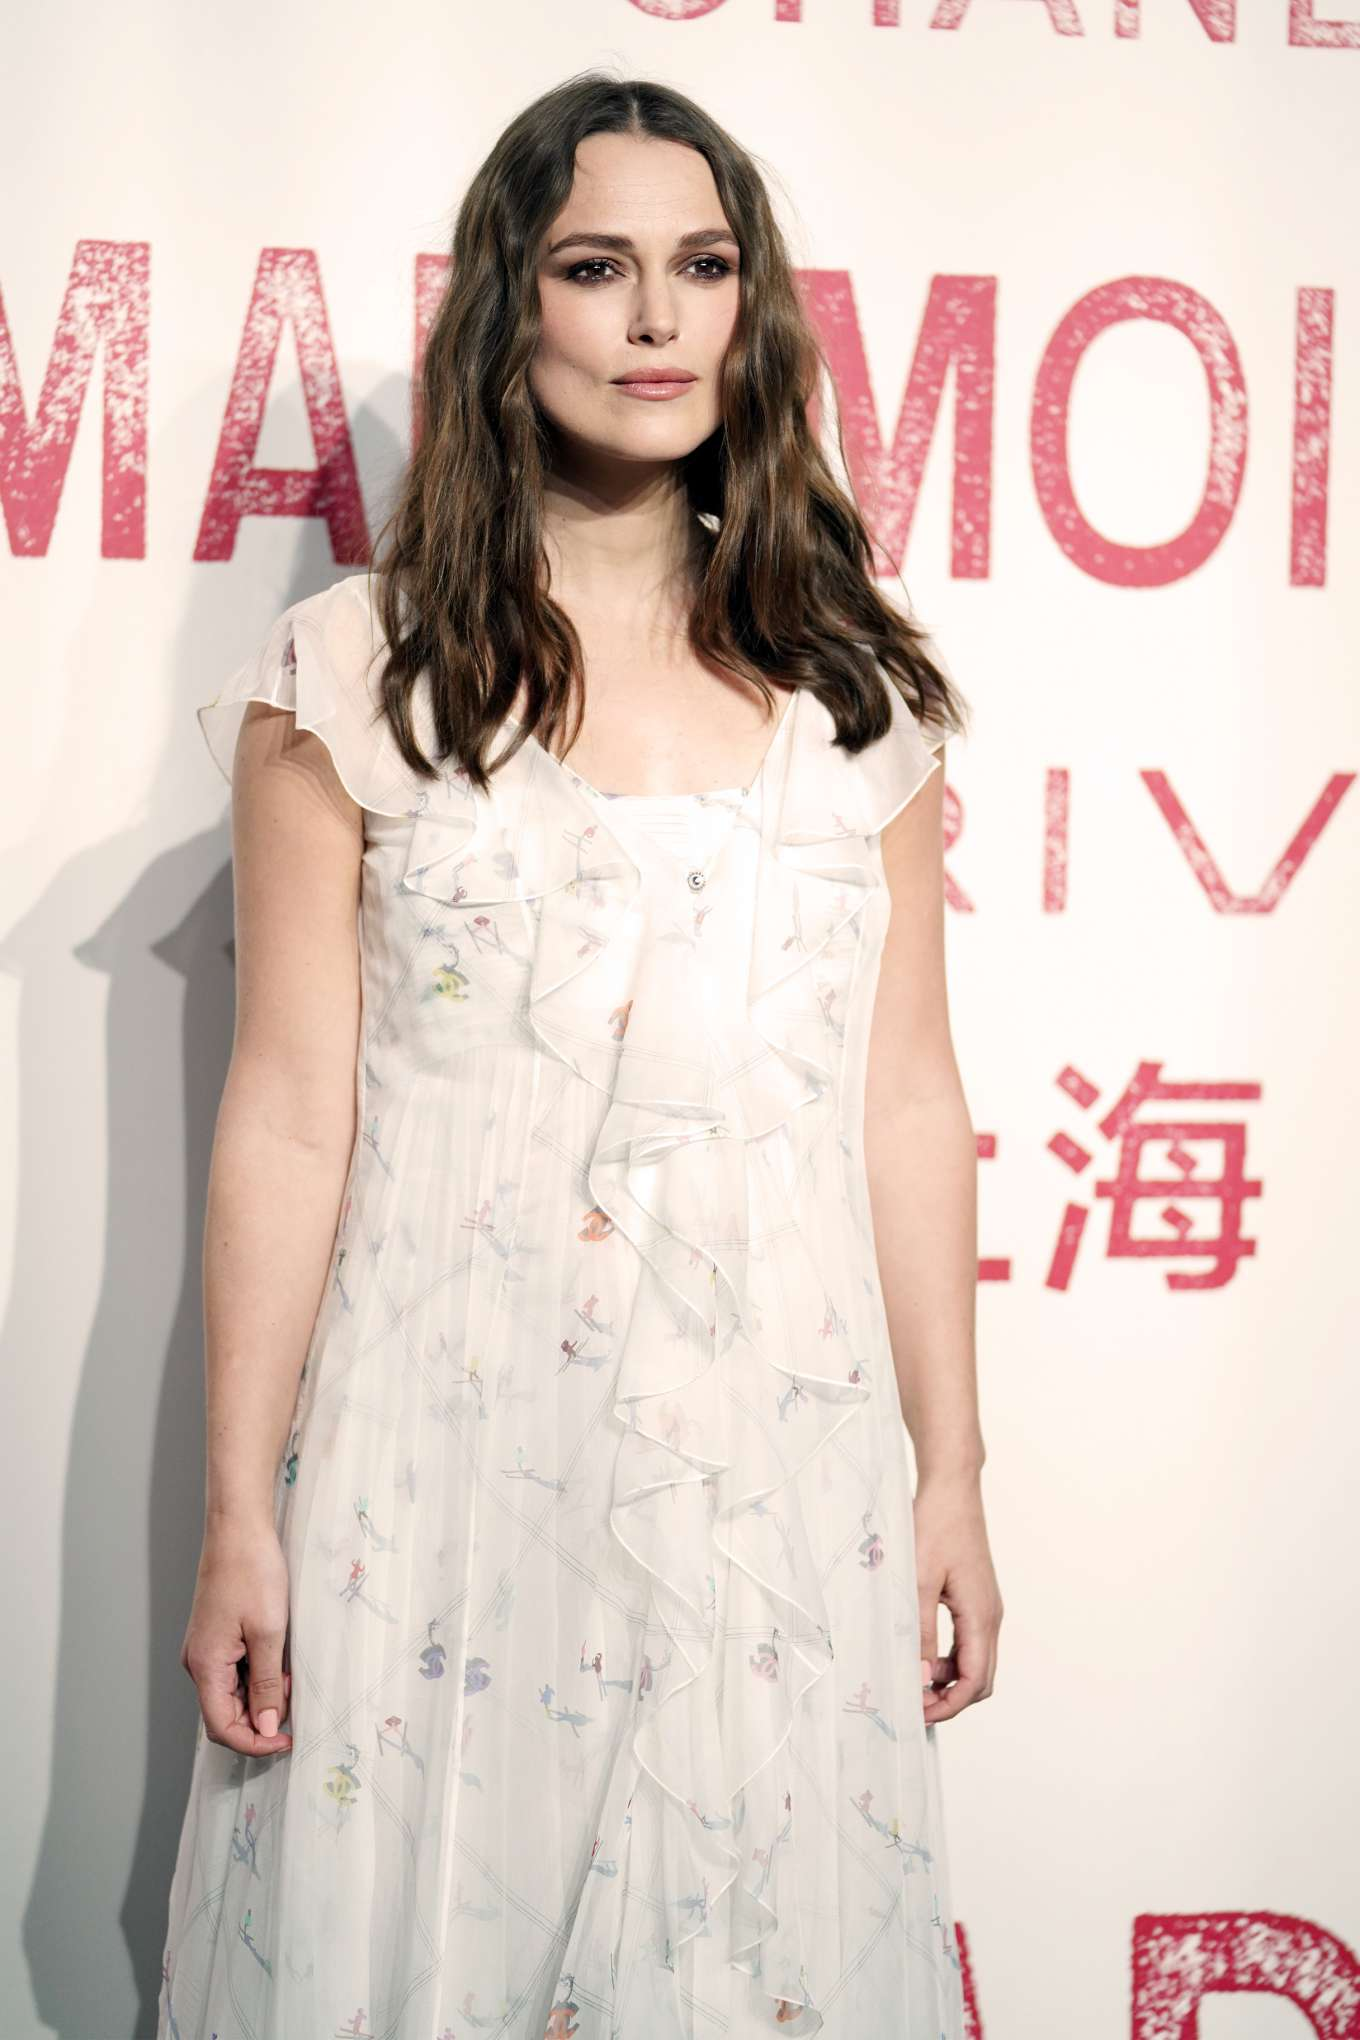 Keira Knightley 2019 : Keira Knightley: Arrives for the Chanel Mademoiselle Prive exhibition -05